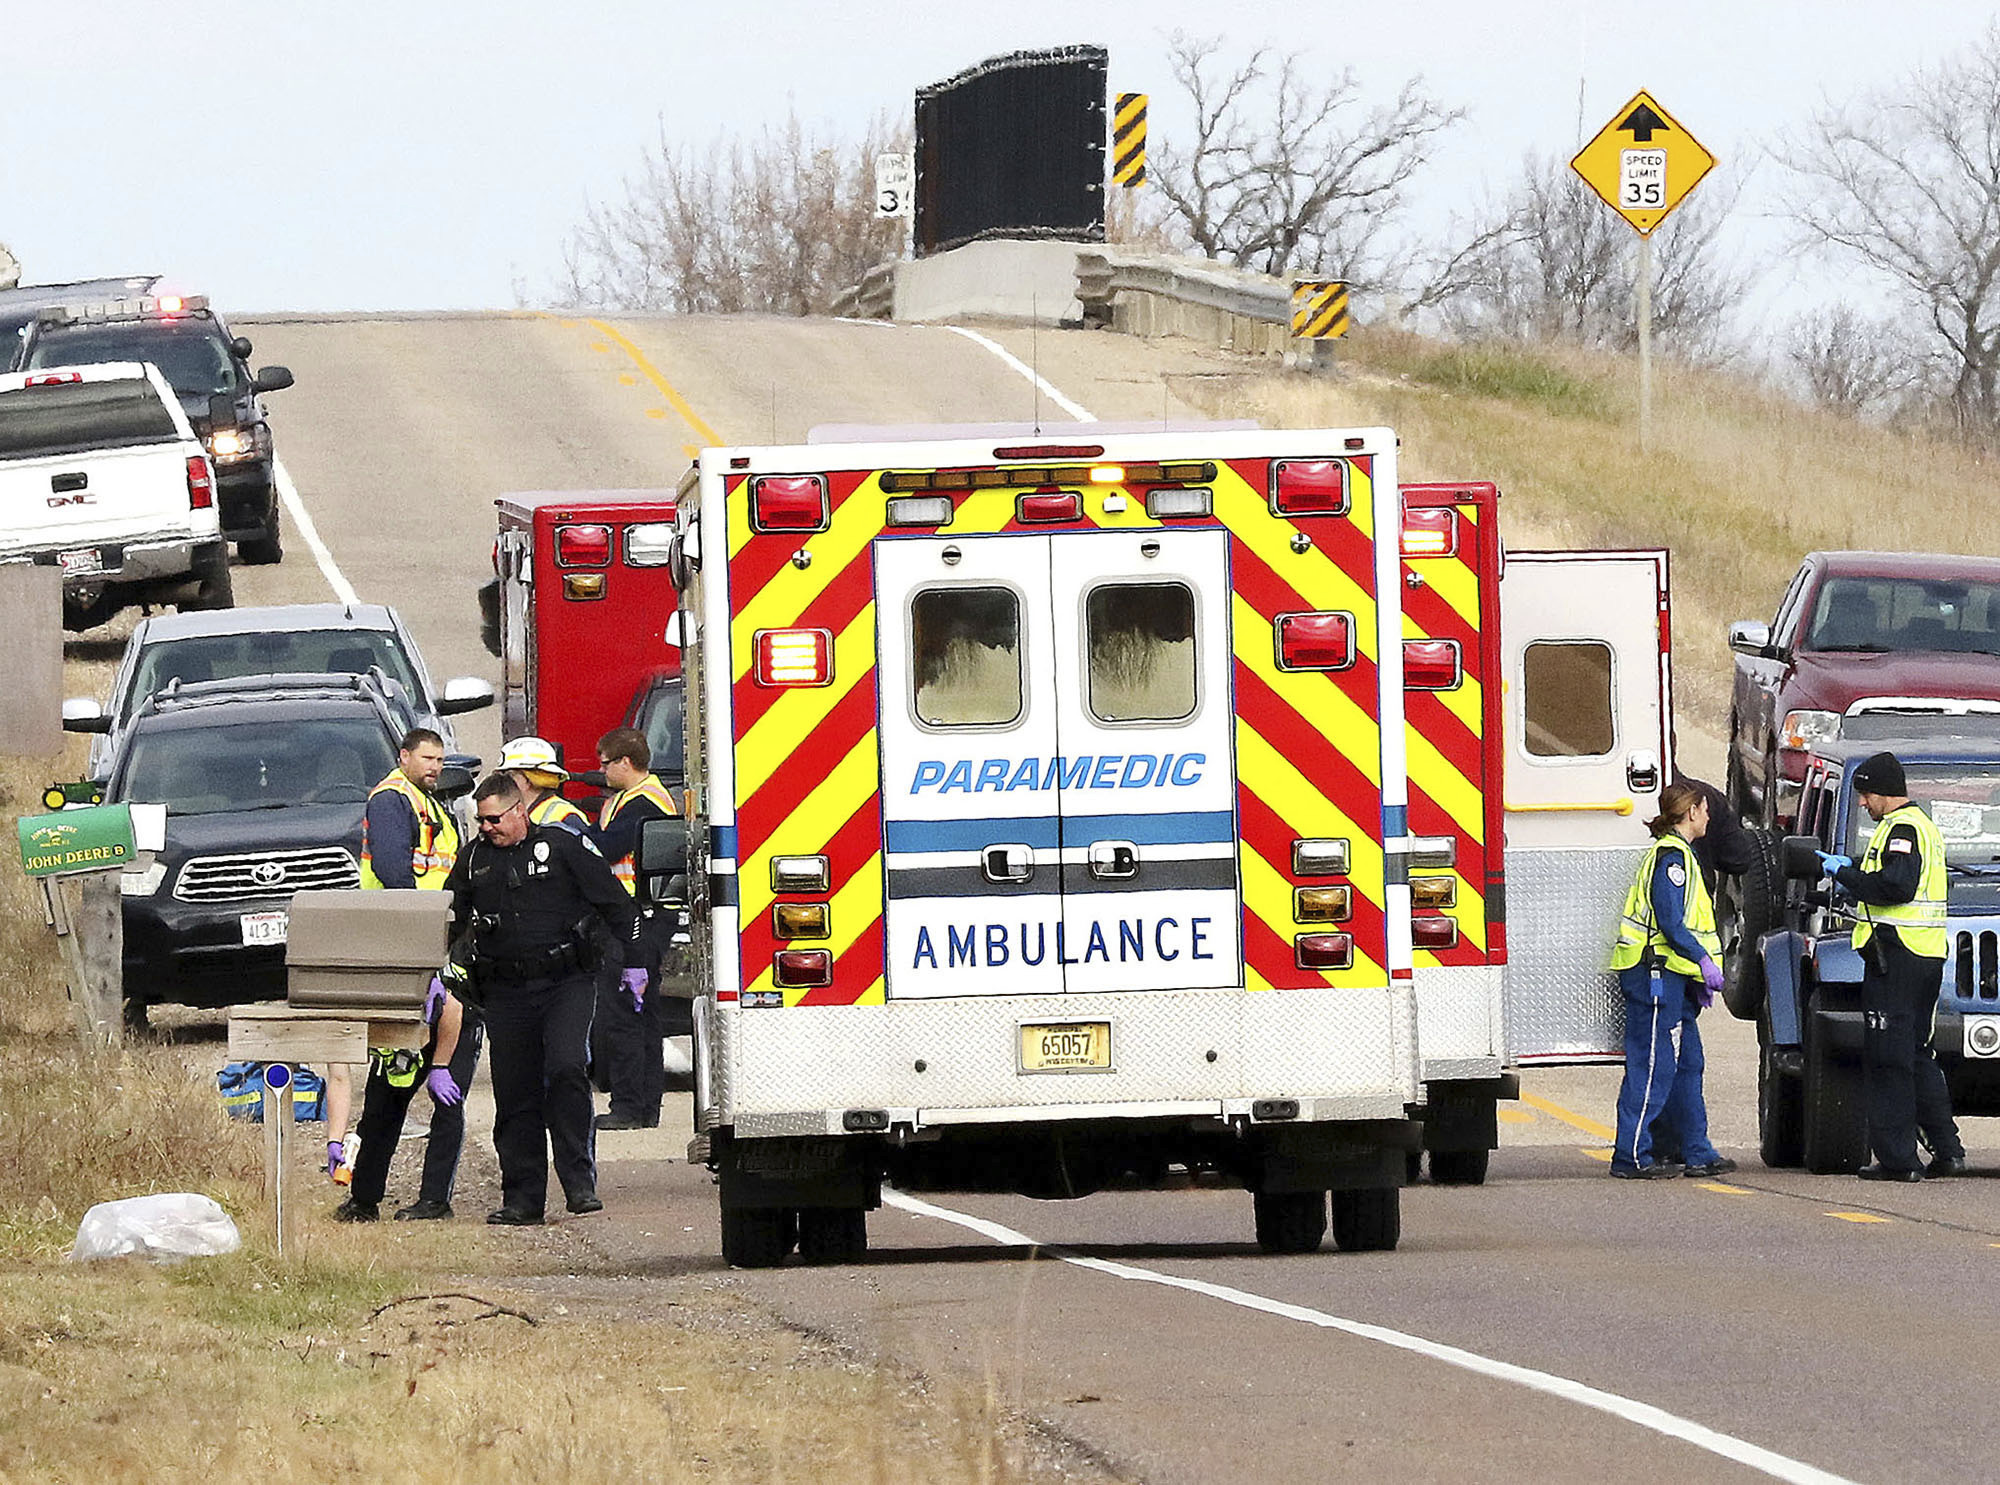 Emergency medical personnel gather at the scene of a hit-and-run accident Saturday, Nov. 3, 2018, in Lake Hallie, Wis., that killed two girls and an adult. (Steve Kinderman/The Eau Claire Leader-Telegram via AP)